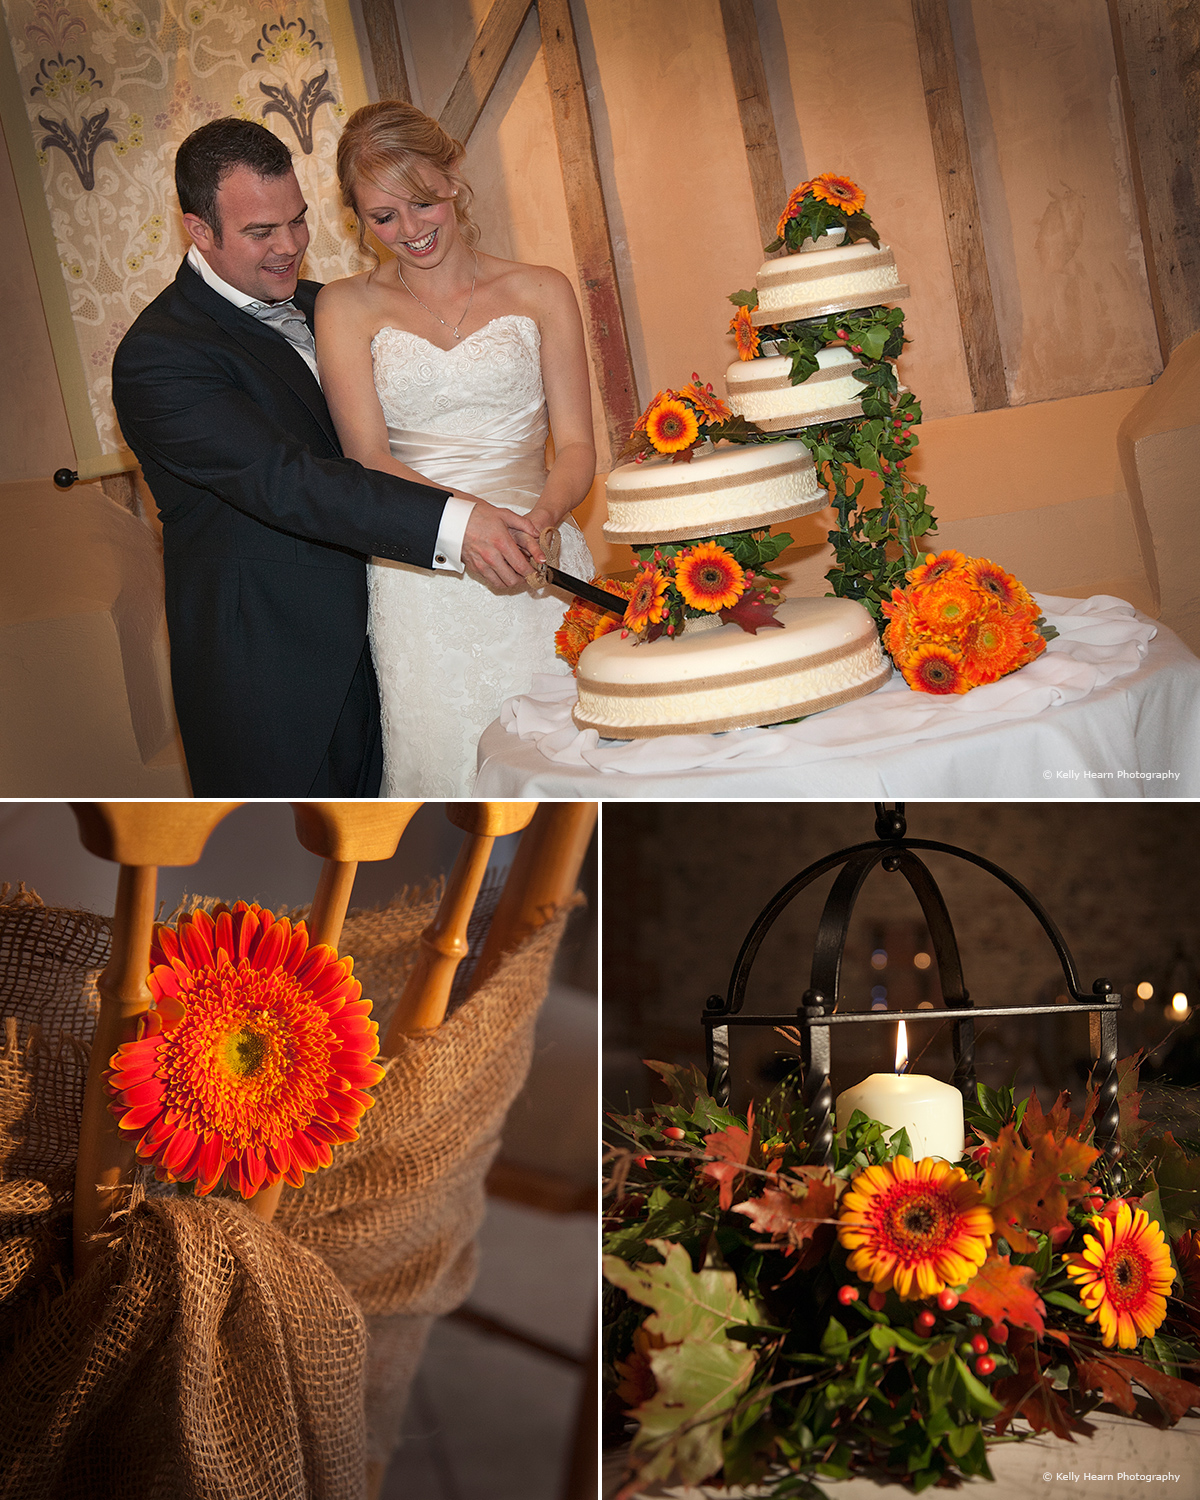 The beautiful cake and decor at Upwaltham Barns - © Kelly Hearn Photography